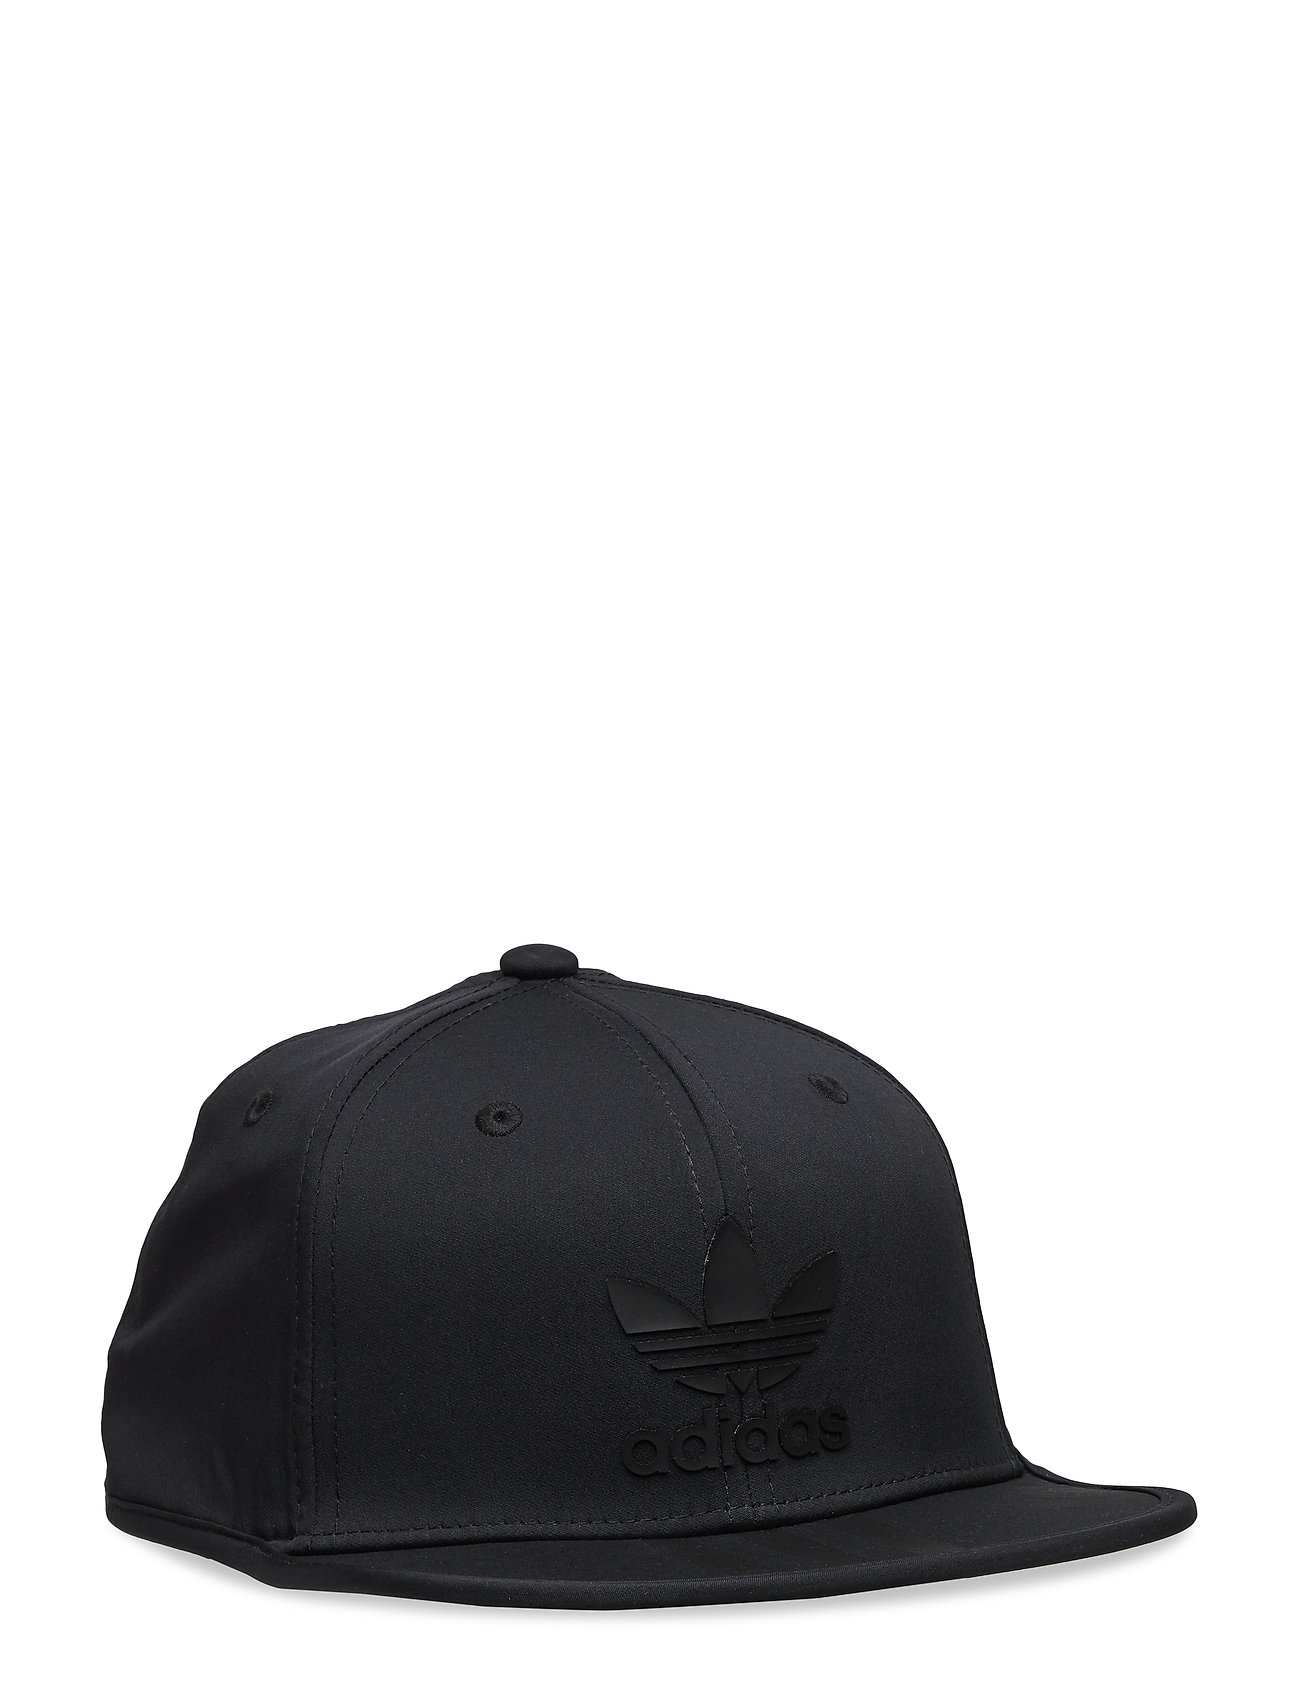 blackAdidas Stripe Originals 3 Snapblack VqMSLUzpG